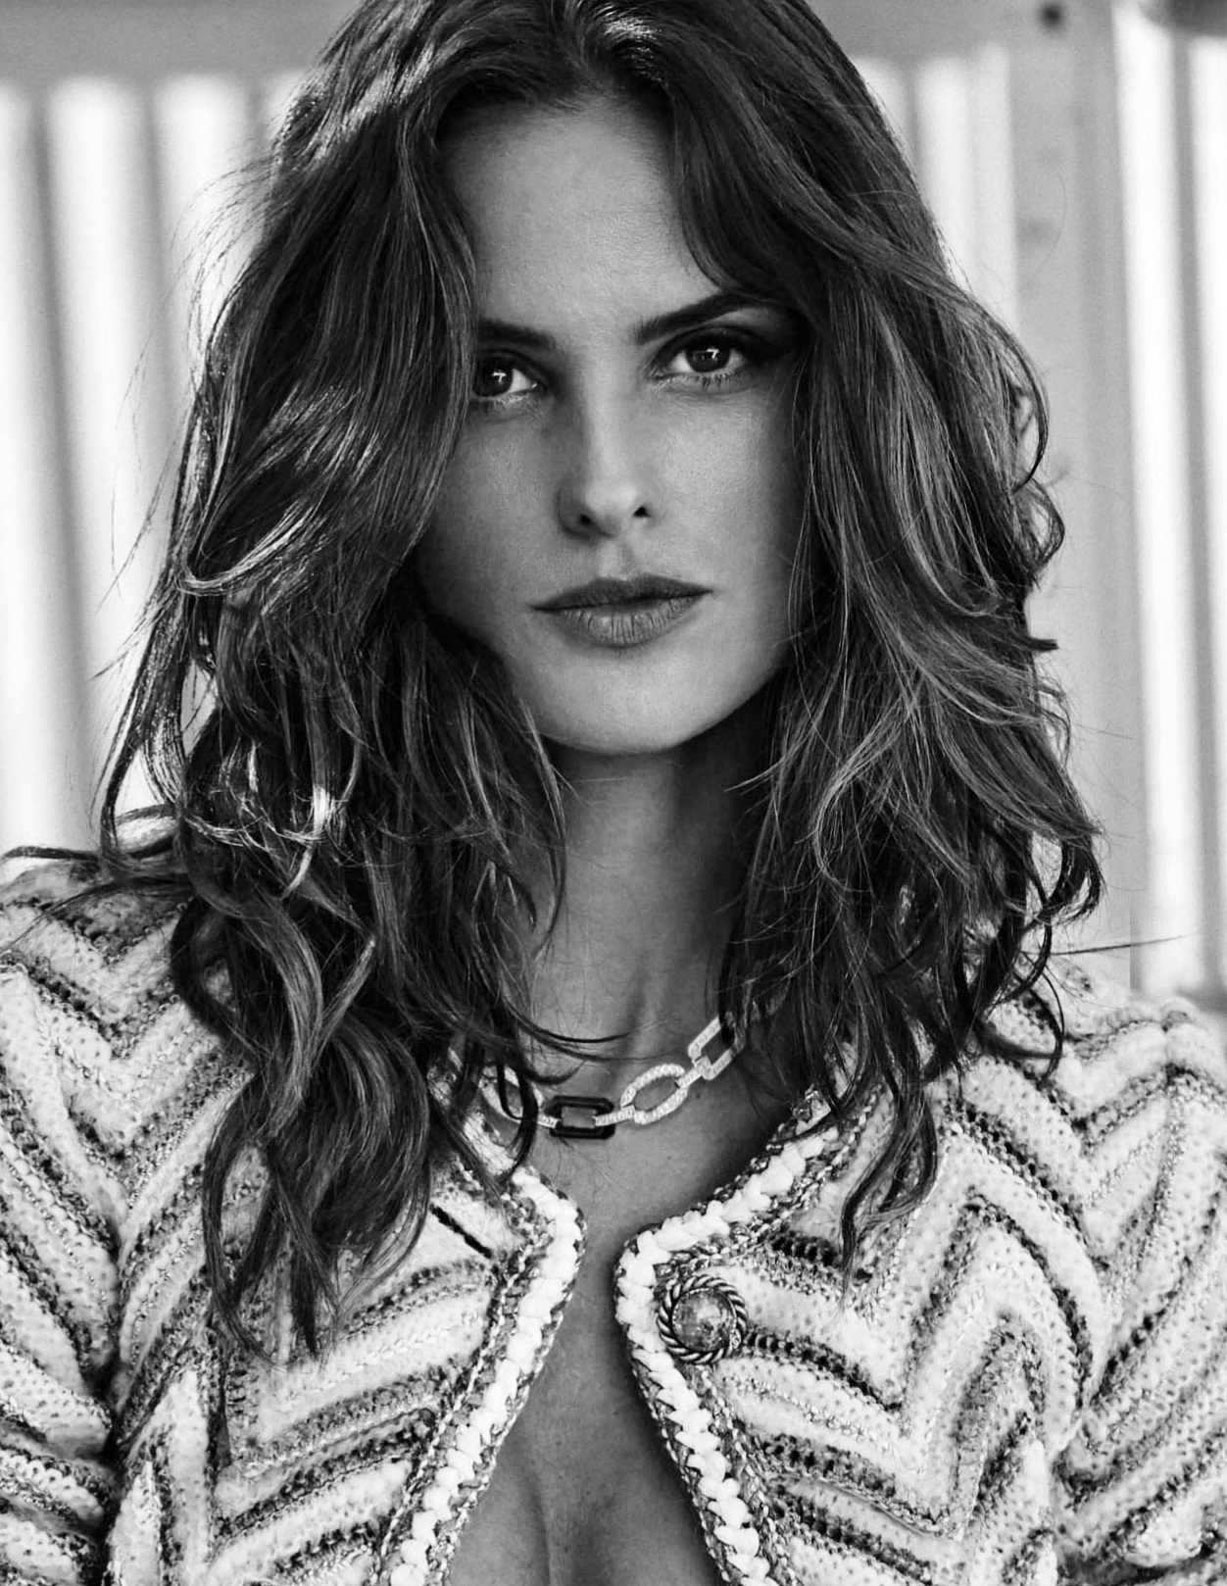 Izabel Goulart by Xavi Gordo - Elle Russia june 2018